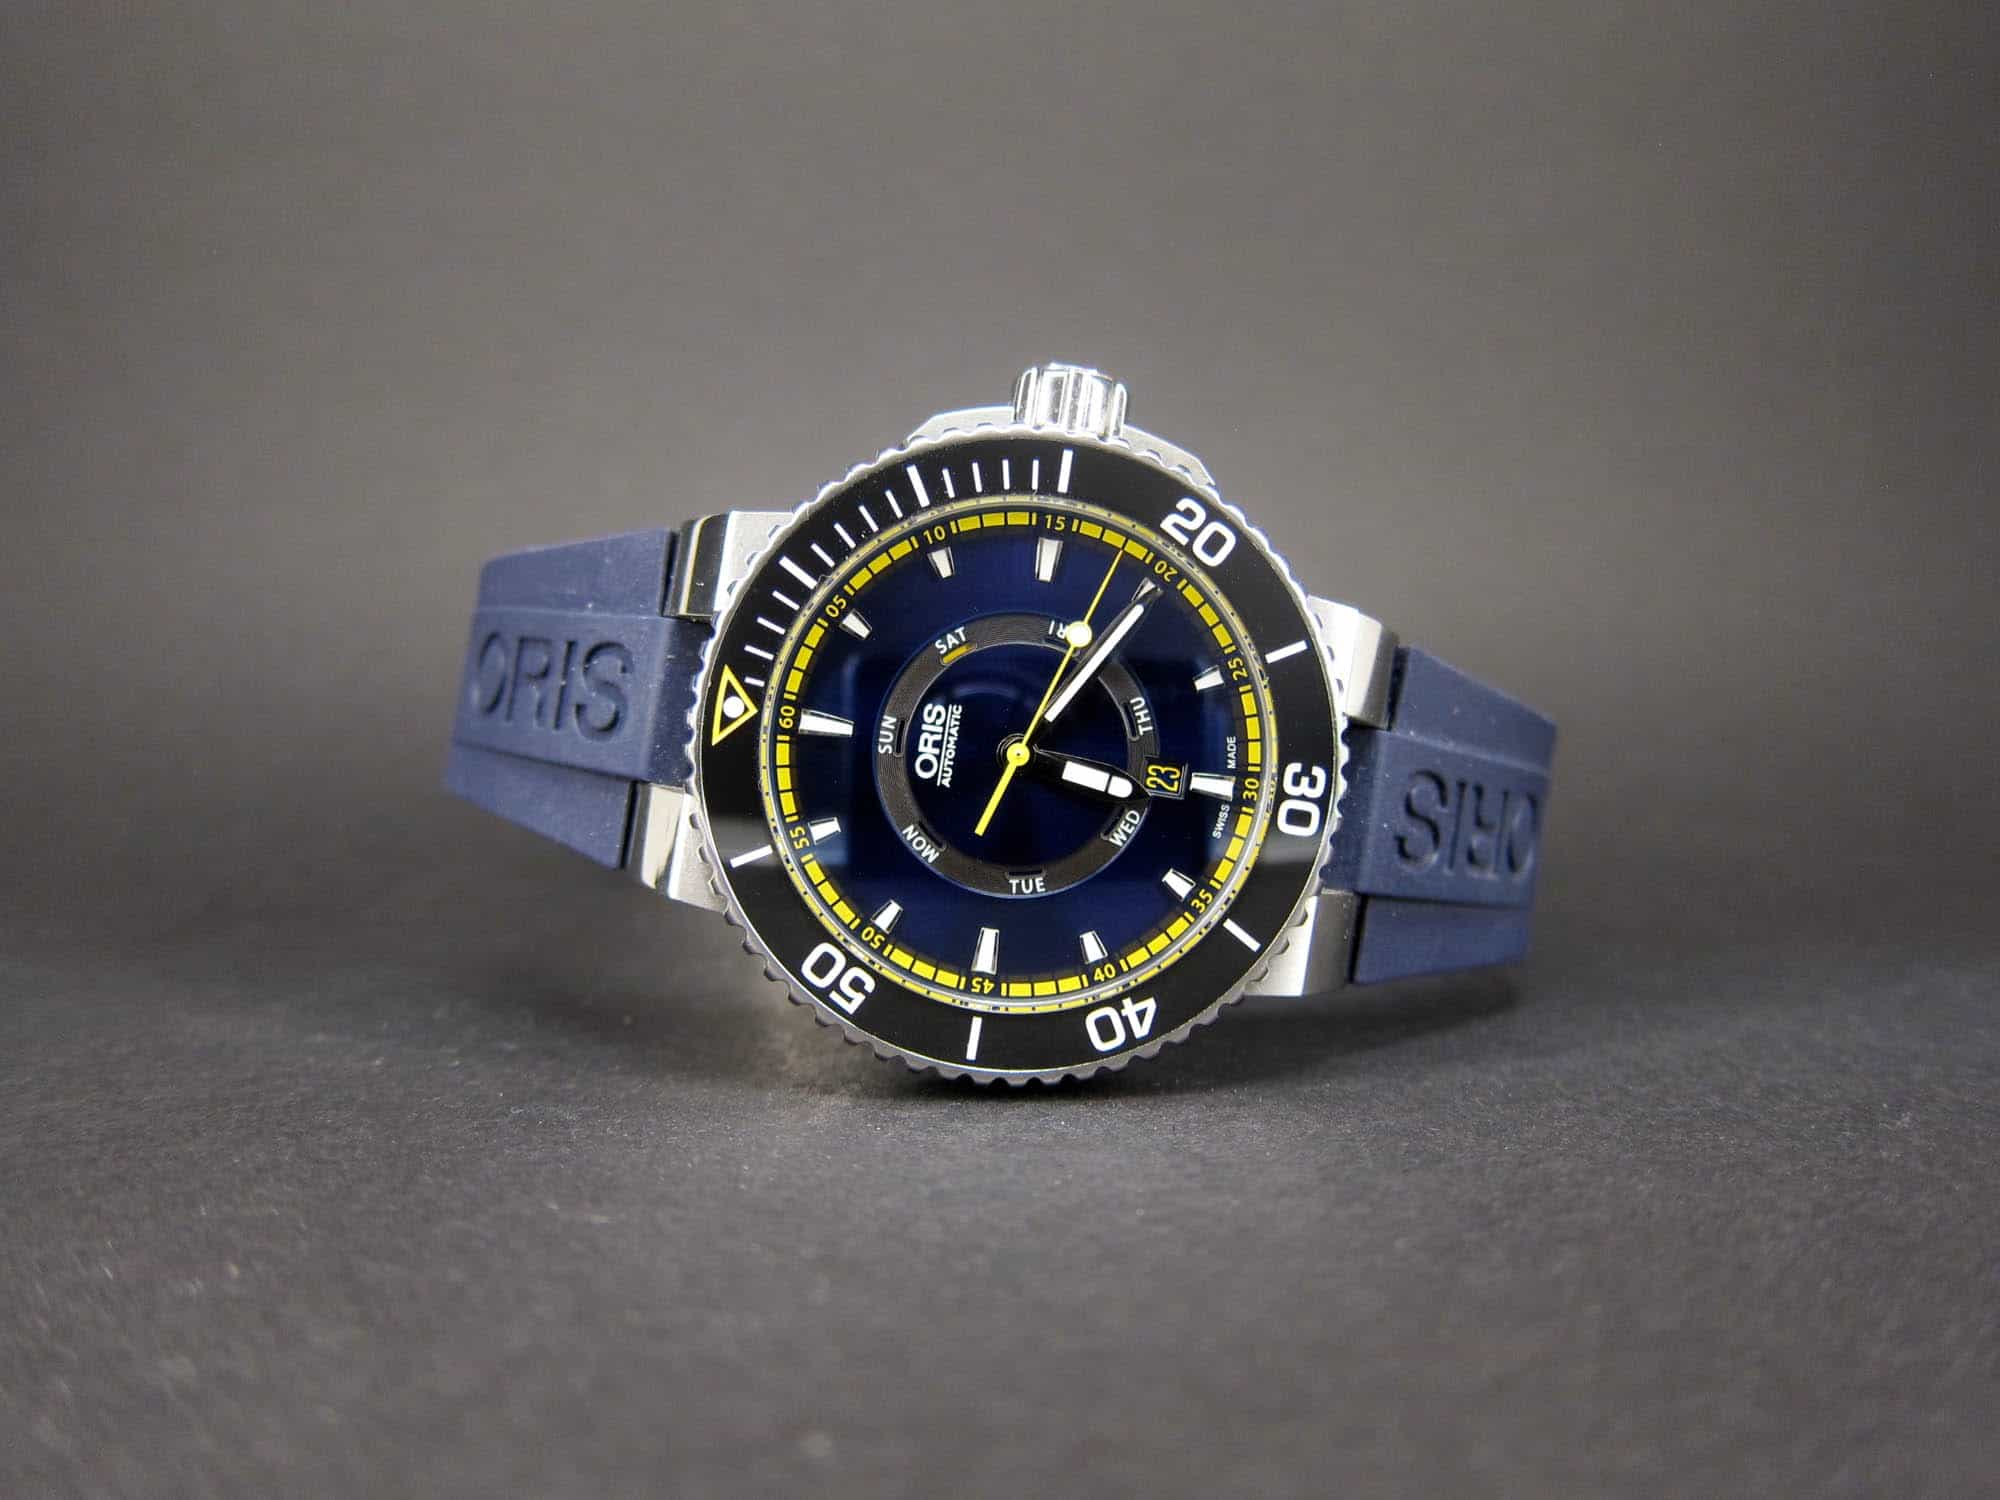 Oris Aquis Great Barrier Reef II Limited Edition